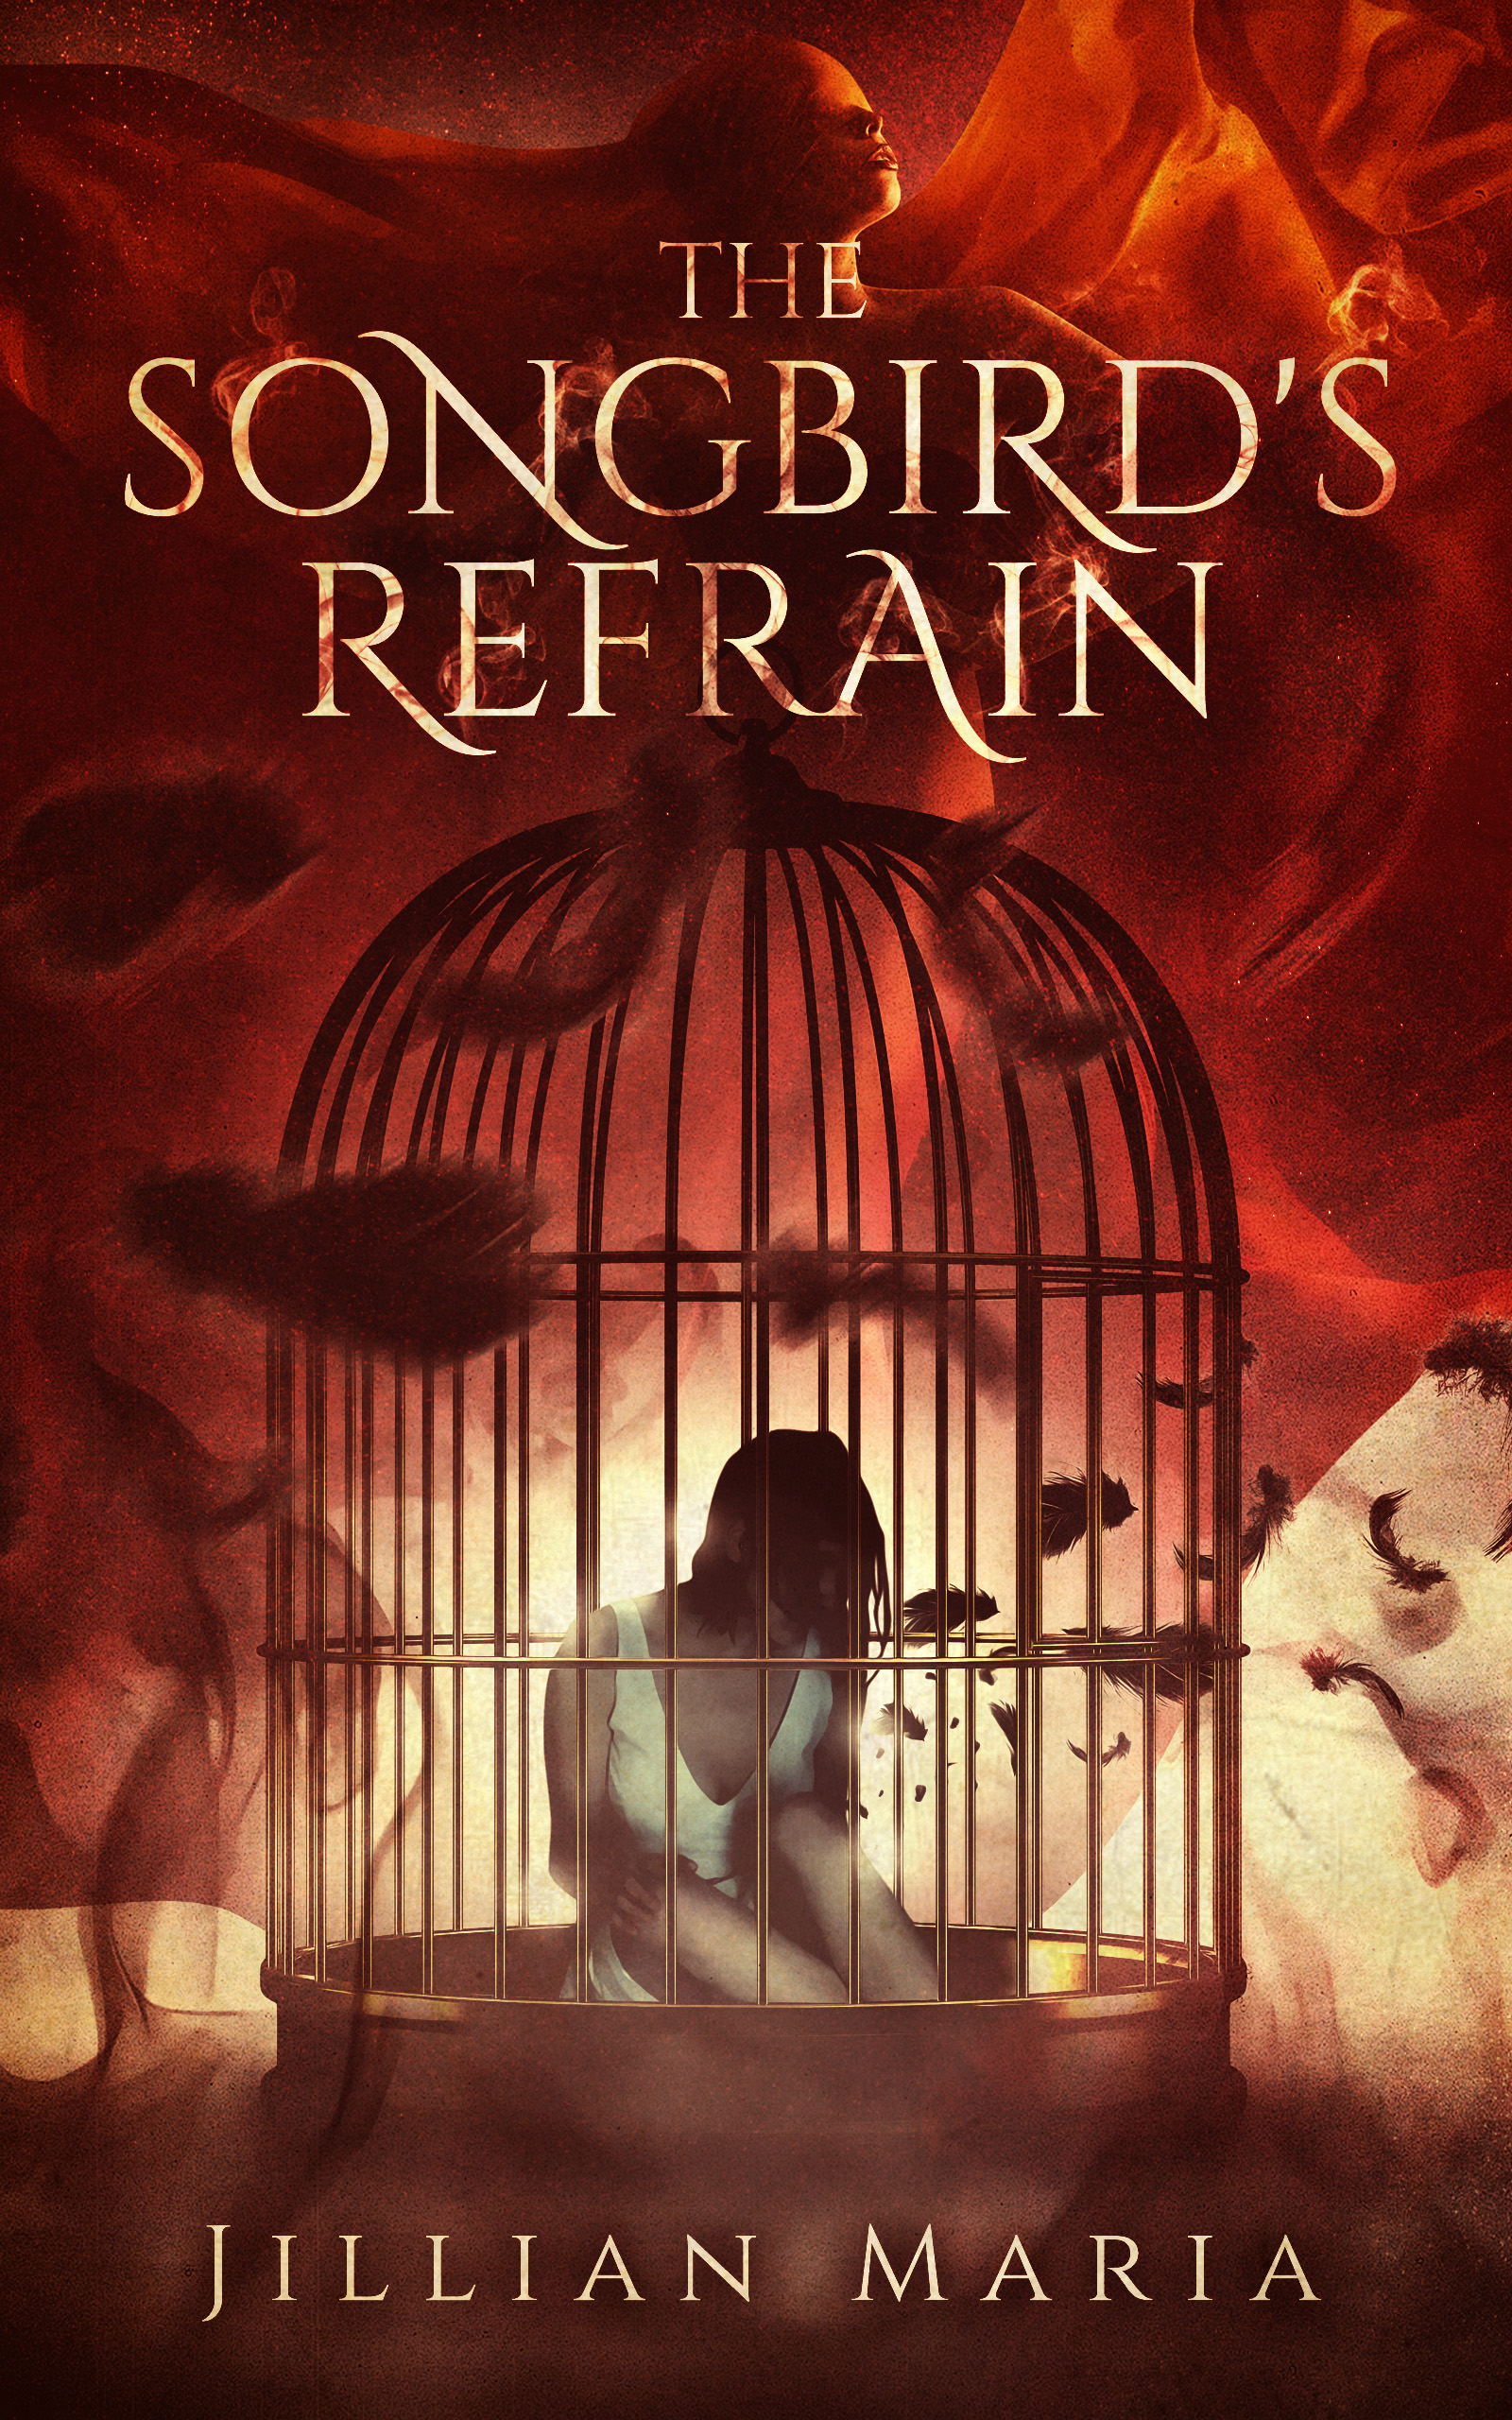 Image result for The Songbird's Refrain book